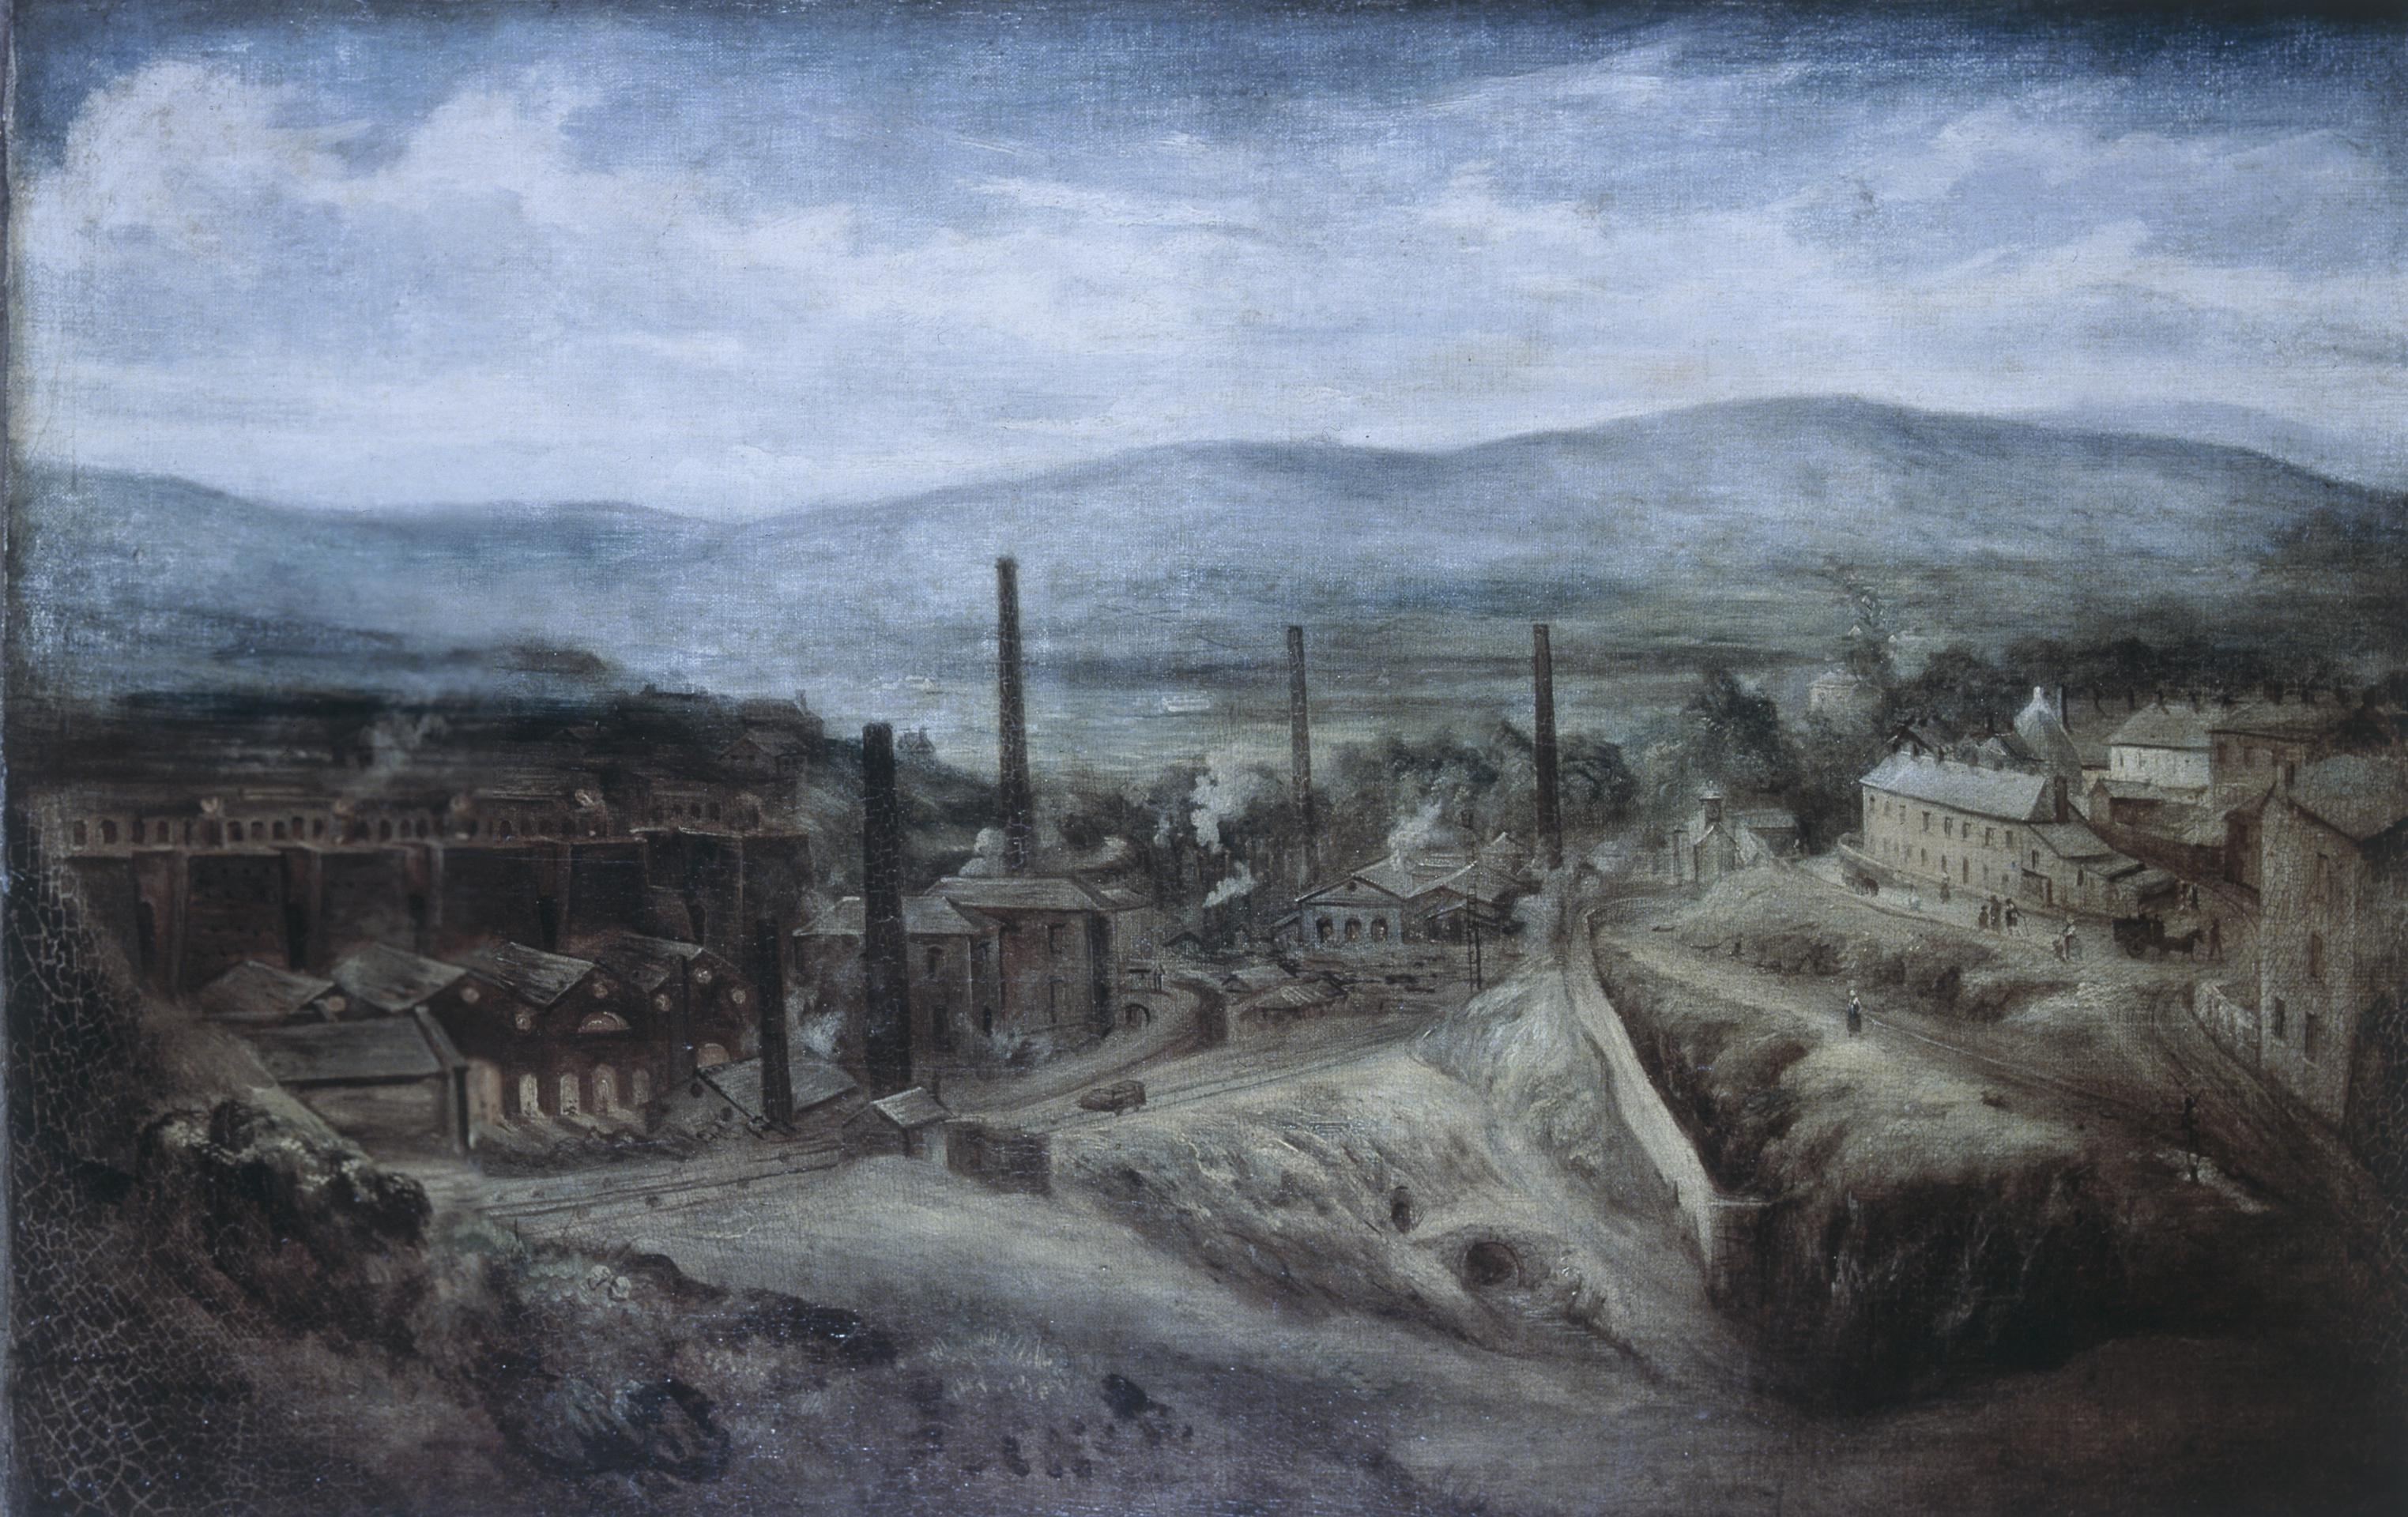 Open the image 'Penydarren ironworks, negative'